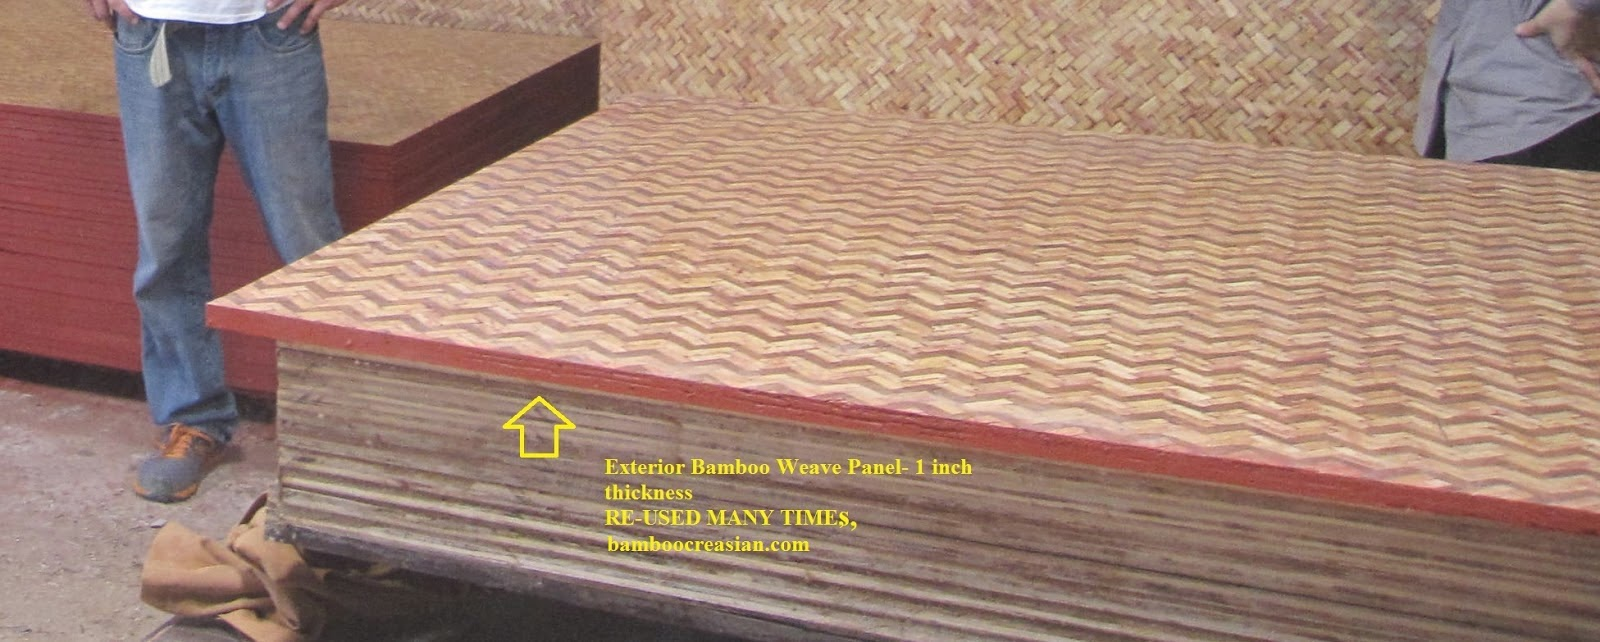 quality bamboo and asian thatch: waterproof bamboo panels for